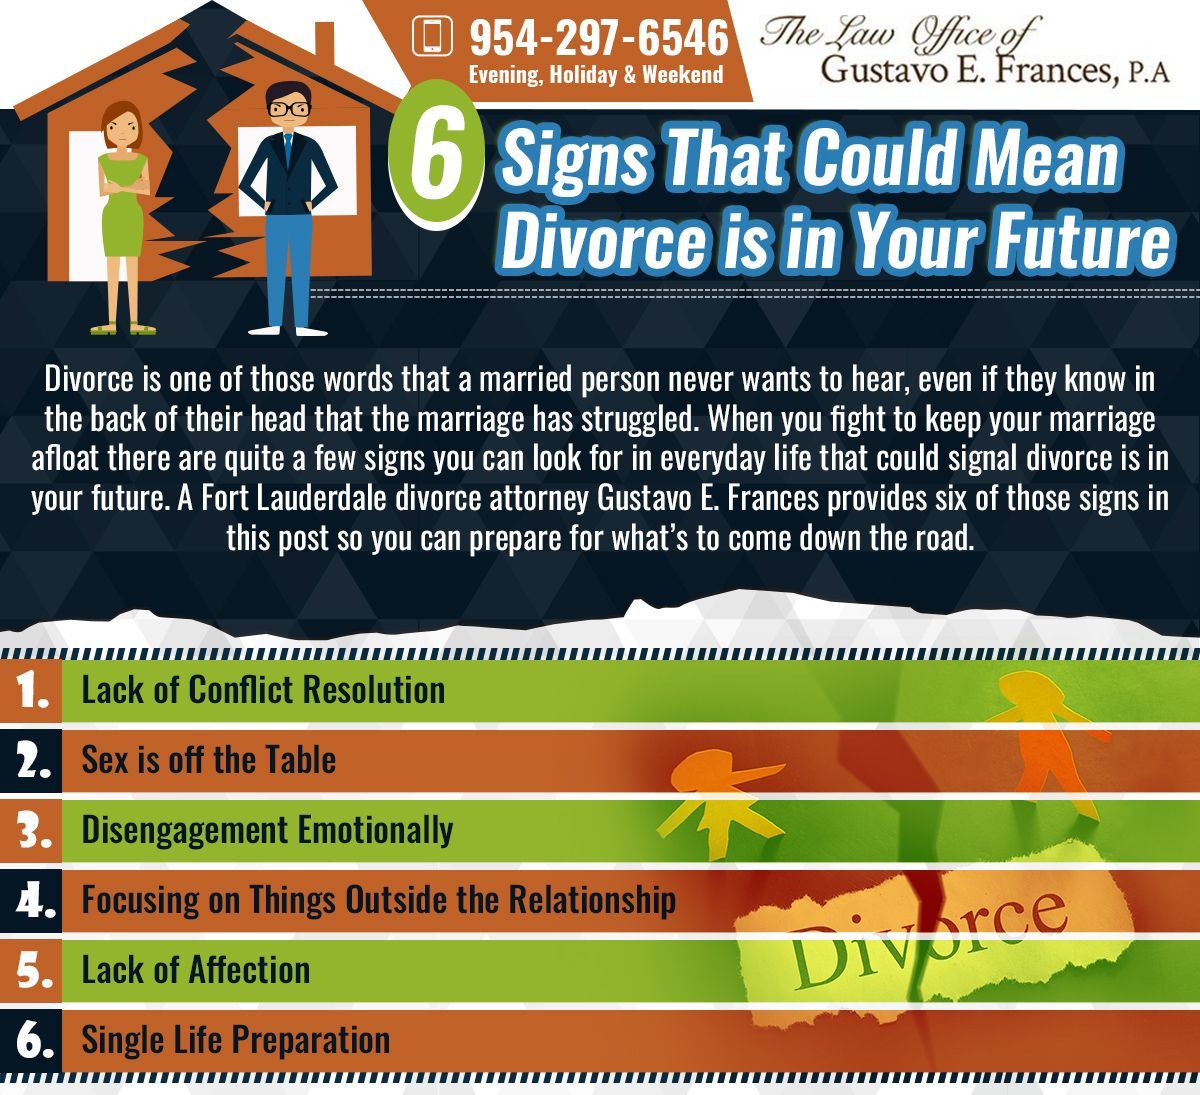 acb381bc0ba5f9b18c7b05b3f86bf0b0 - How To Get Divorced In Pa Without A Lawyer